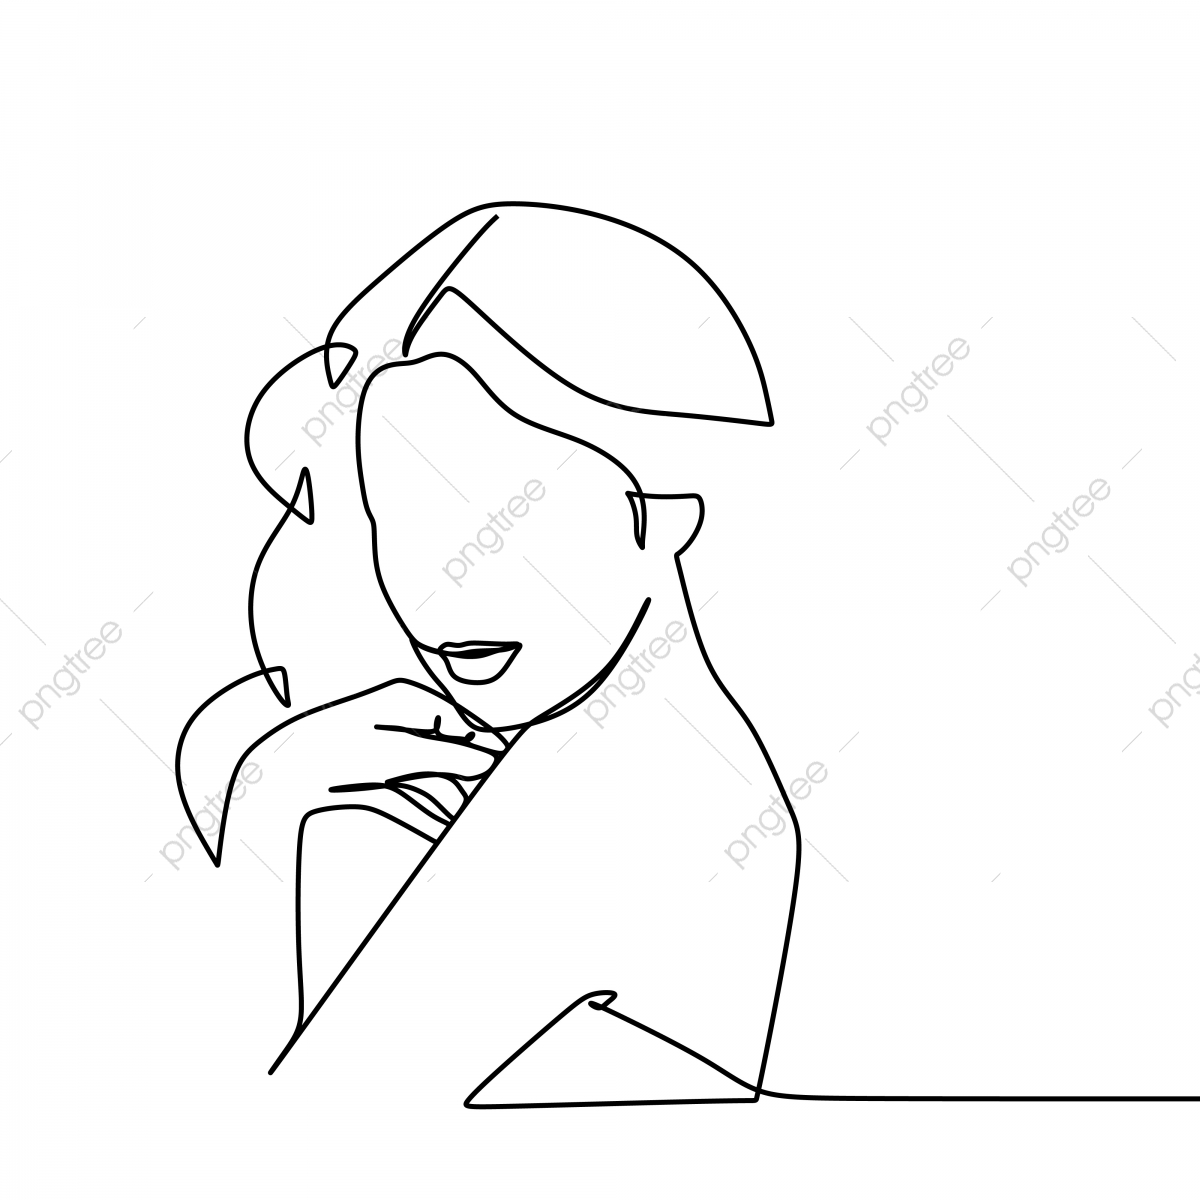 Woman Spa Face Line Drawing No Background Black And White